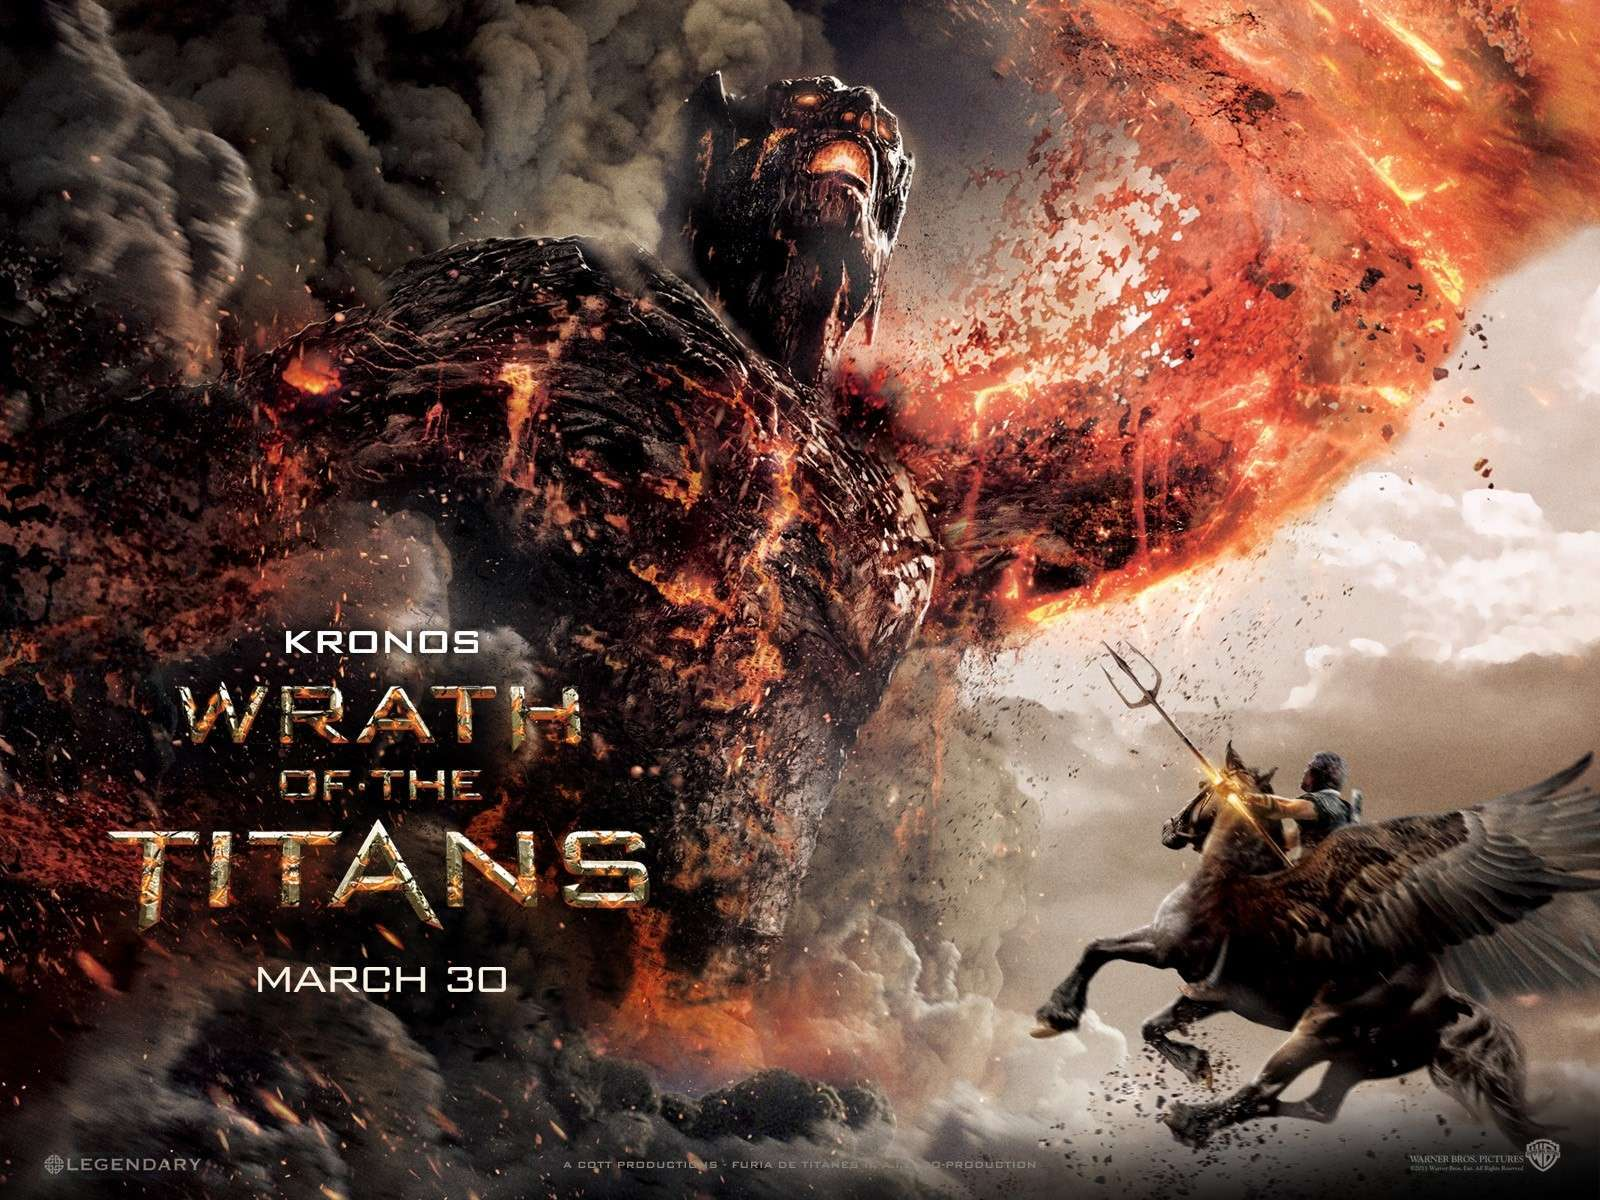 myth perseus vs movie clash tit The new action movie clash of the titans is entertaining as a popcorn flick but students of the greek classics will probably feel their brain explode at all the liberties taken with the myth of perseus.